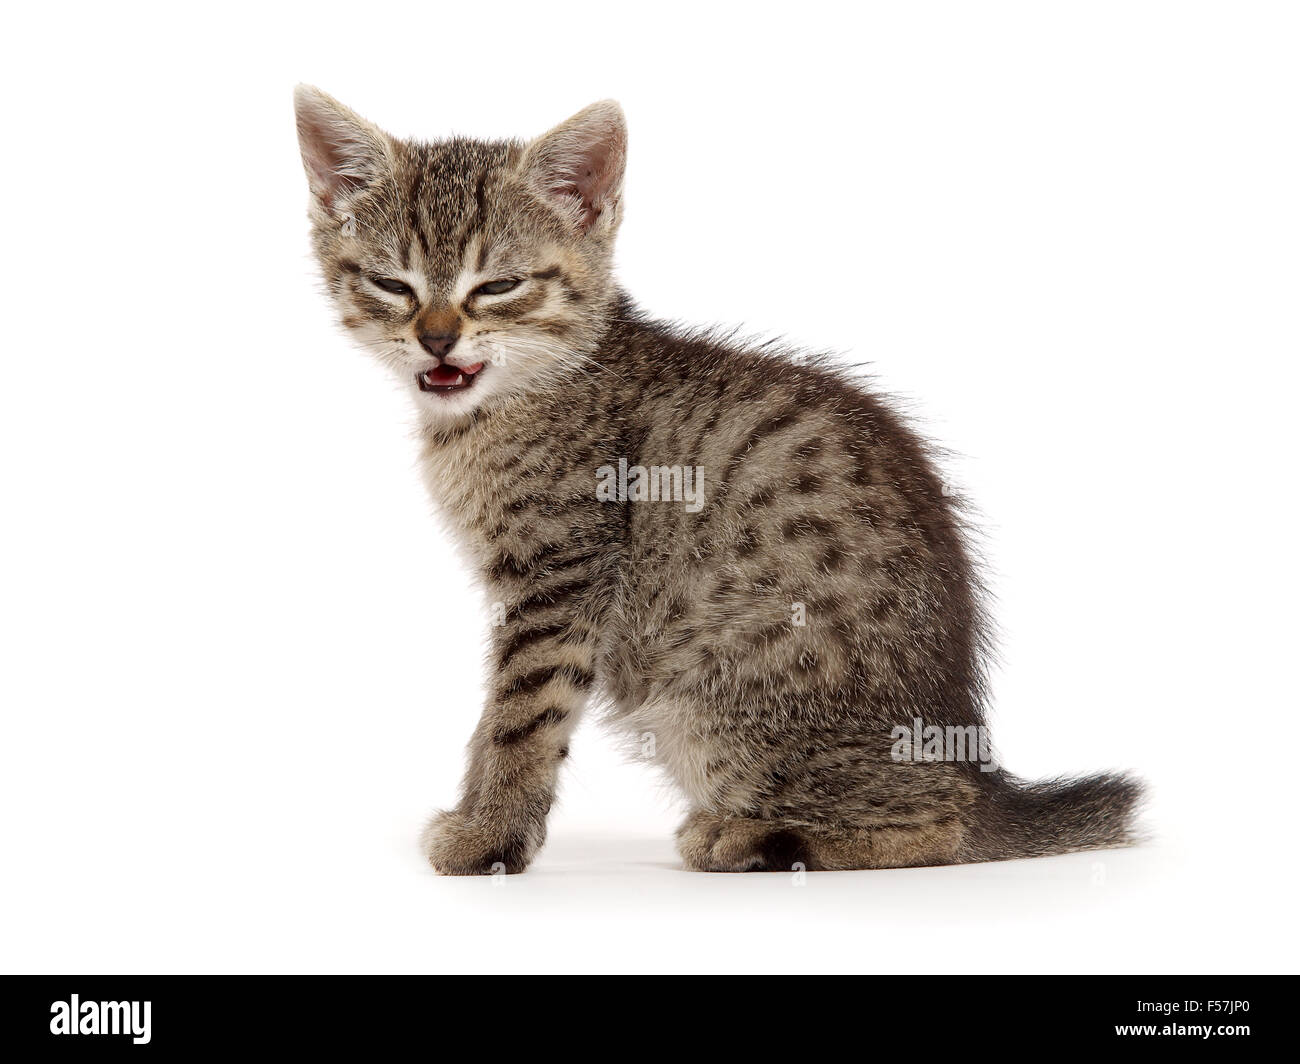 Angry kitten - Stock Image